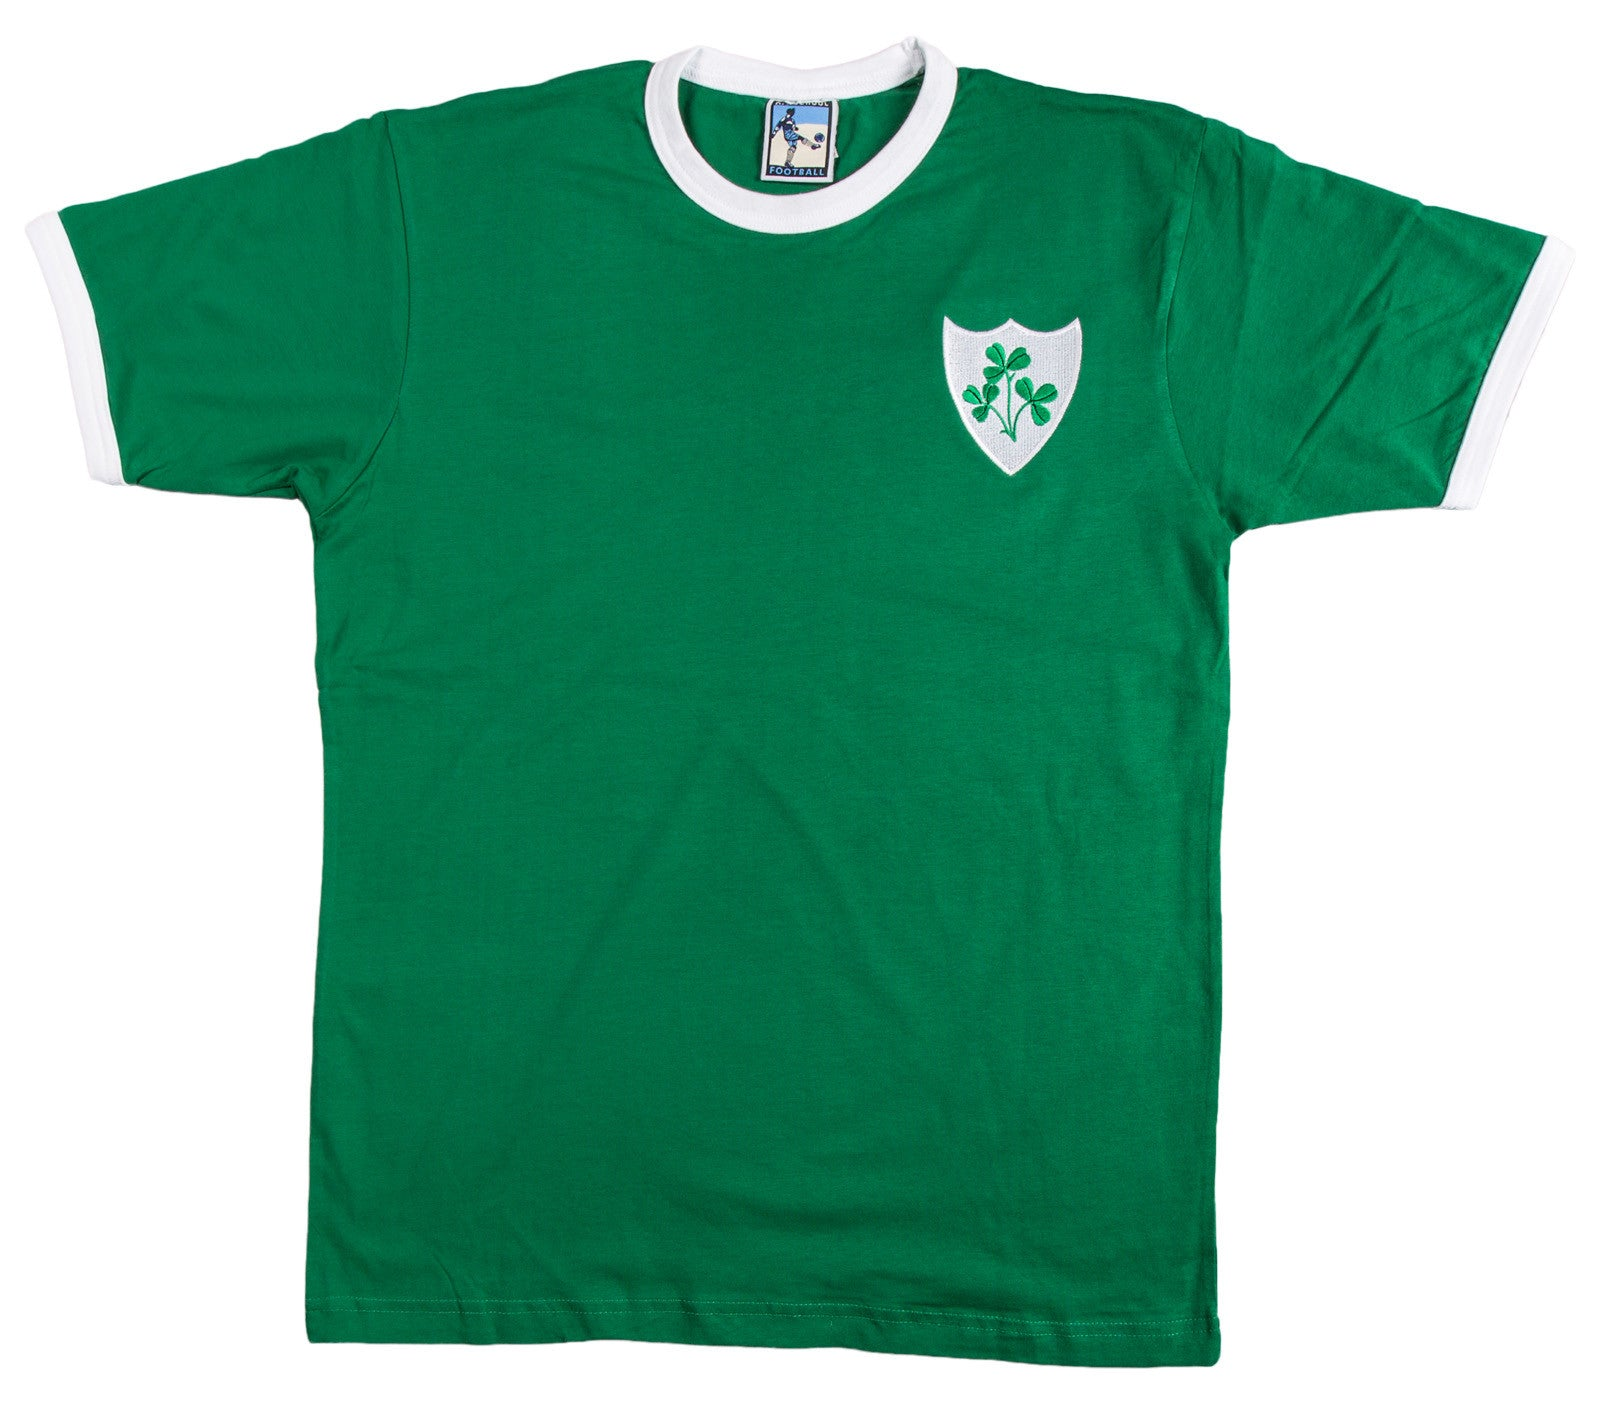 Republic of Ireland Eire Football T Shirt 1970s - Old School Football